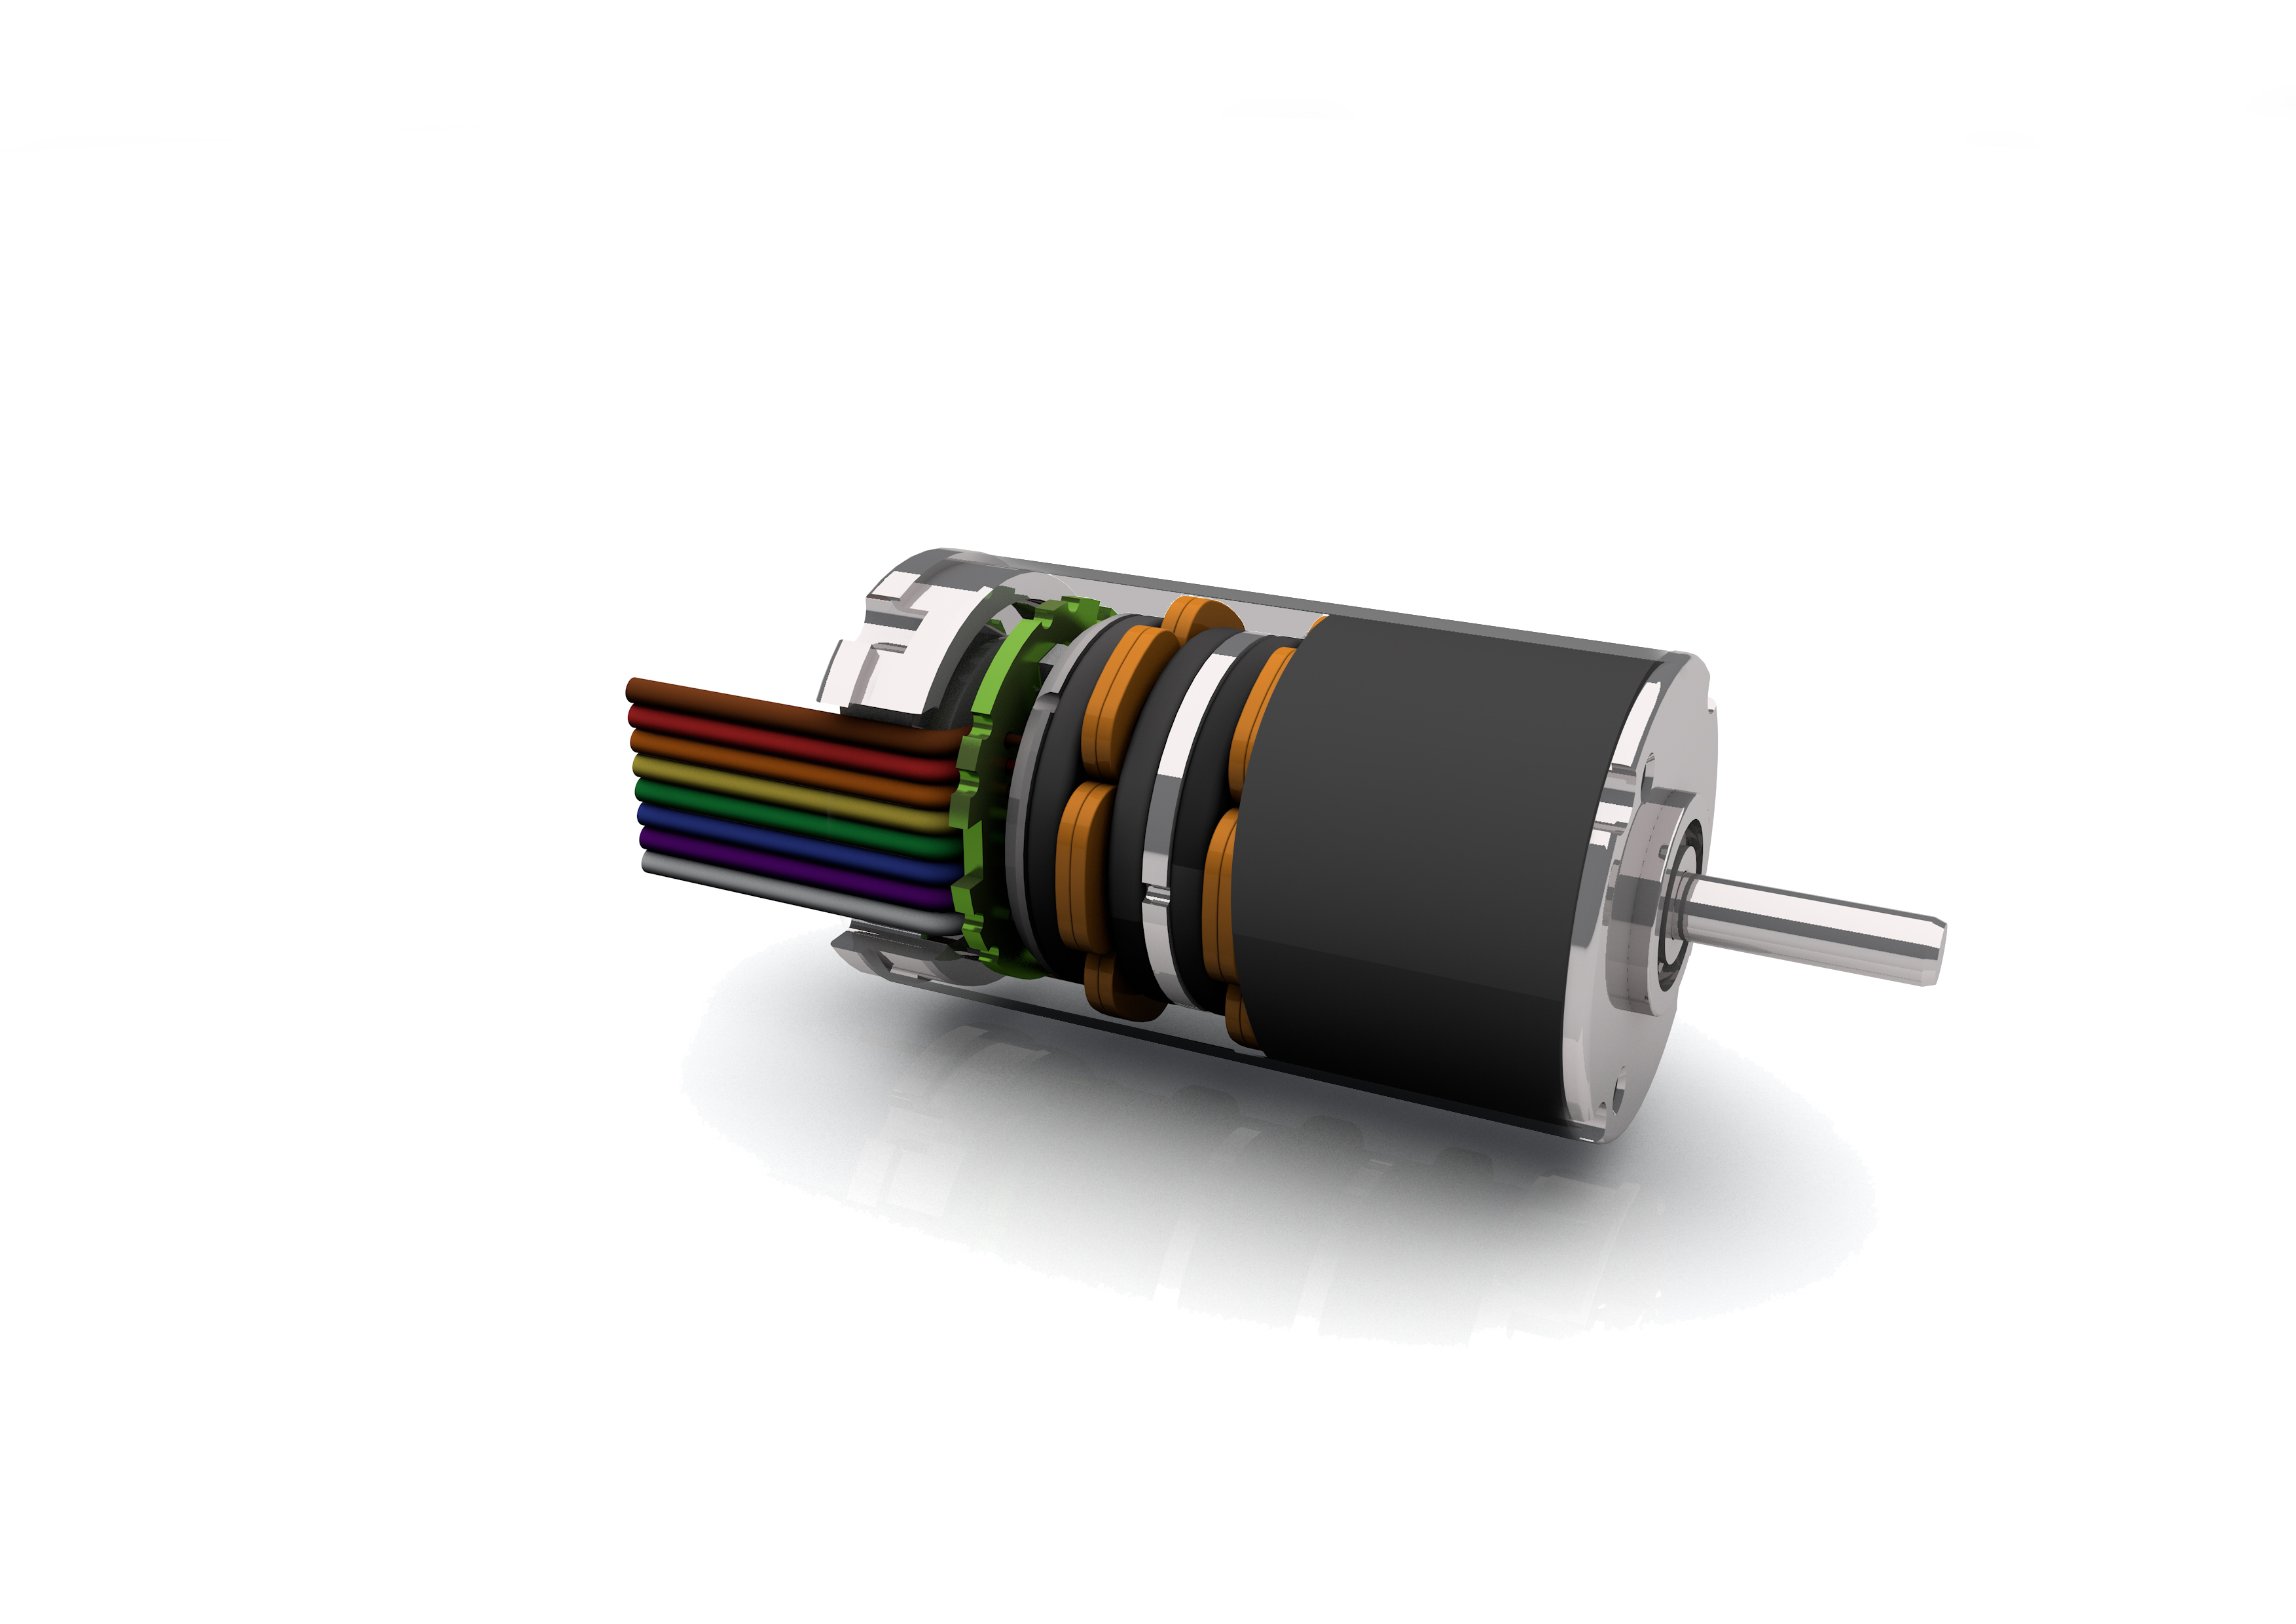 Brushless dc motor with axial flux design news dunkermotoren gmbh brushless dc motor with axial flux design sciox Gallery